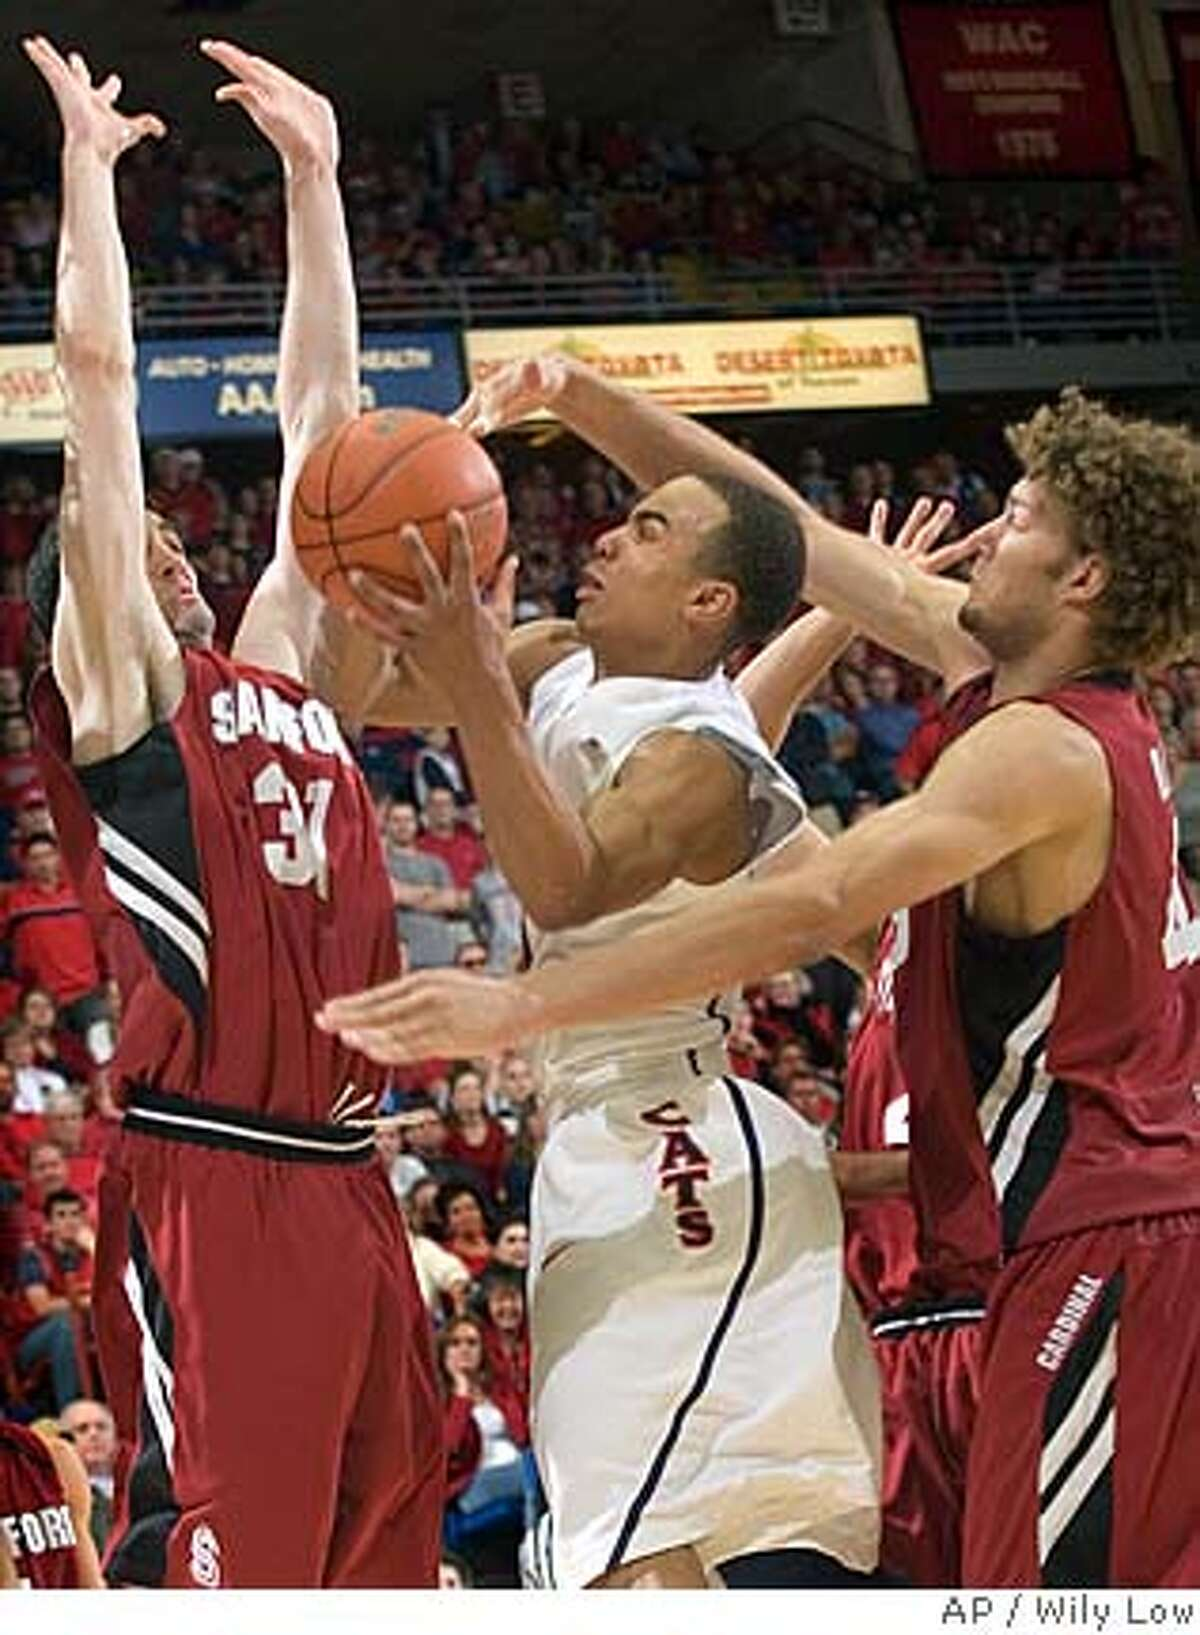 Arizona's Jerryd Bayless, middle, tries to shoot between Stanford's Robin Lopez, right, and Taj Finger (31) in the second half of a college basketball game at McKale Center in Tucson, Ariz., Saturday, Feb. 16, 2008. Stanford won, 67-66. (AP Photo/Wily Low)